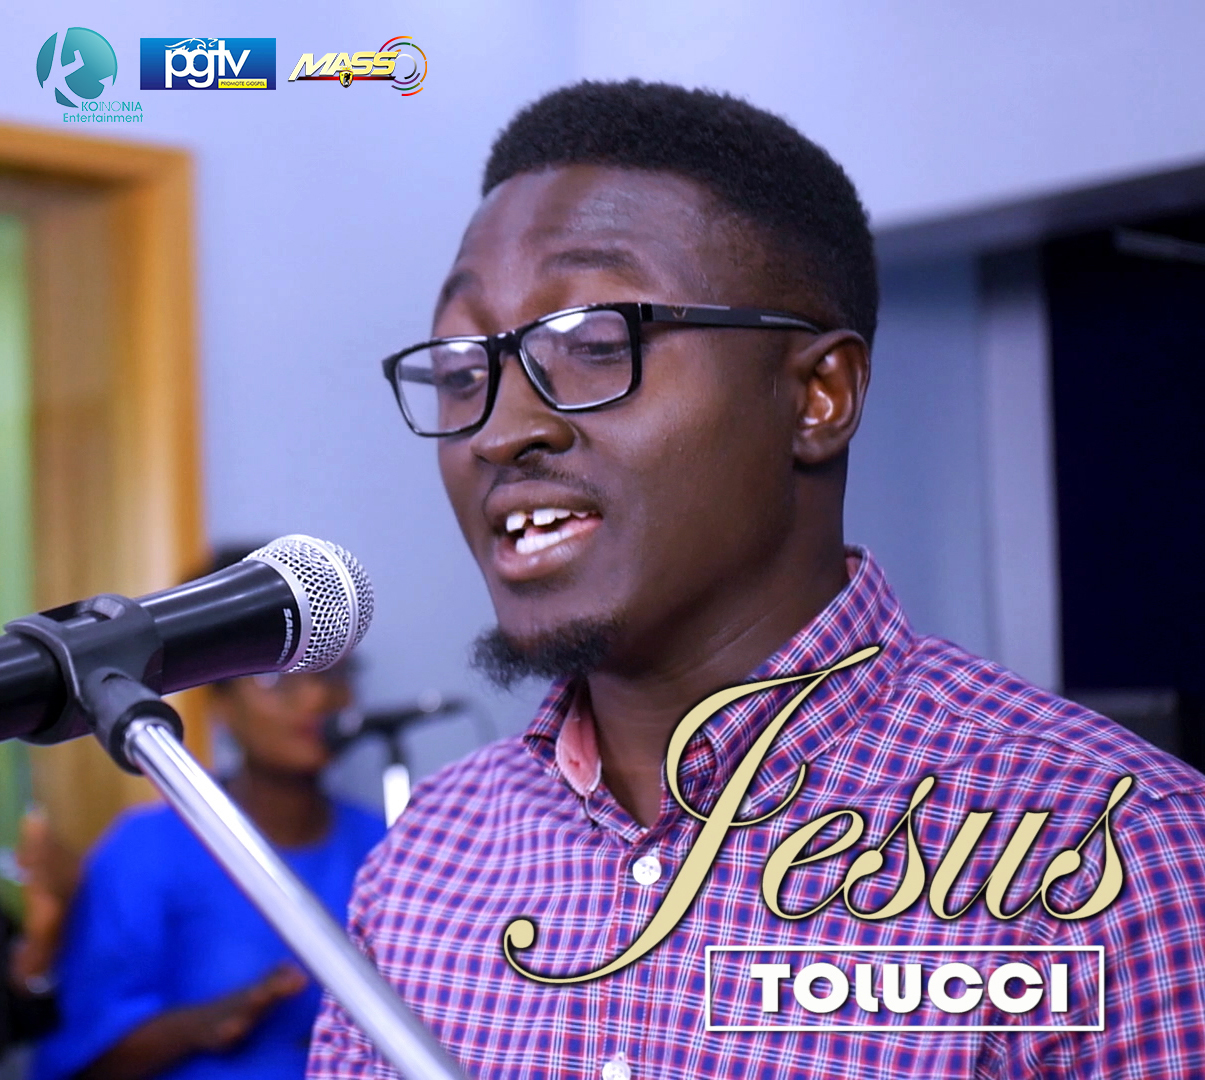 Music: Jesus (Audio & Video) ~ Tolucci [@Tolucci]